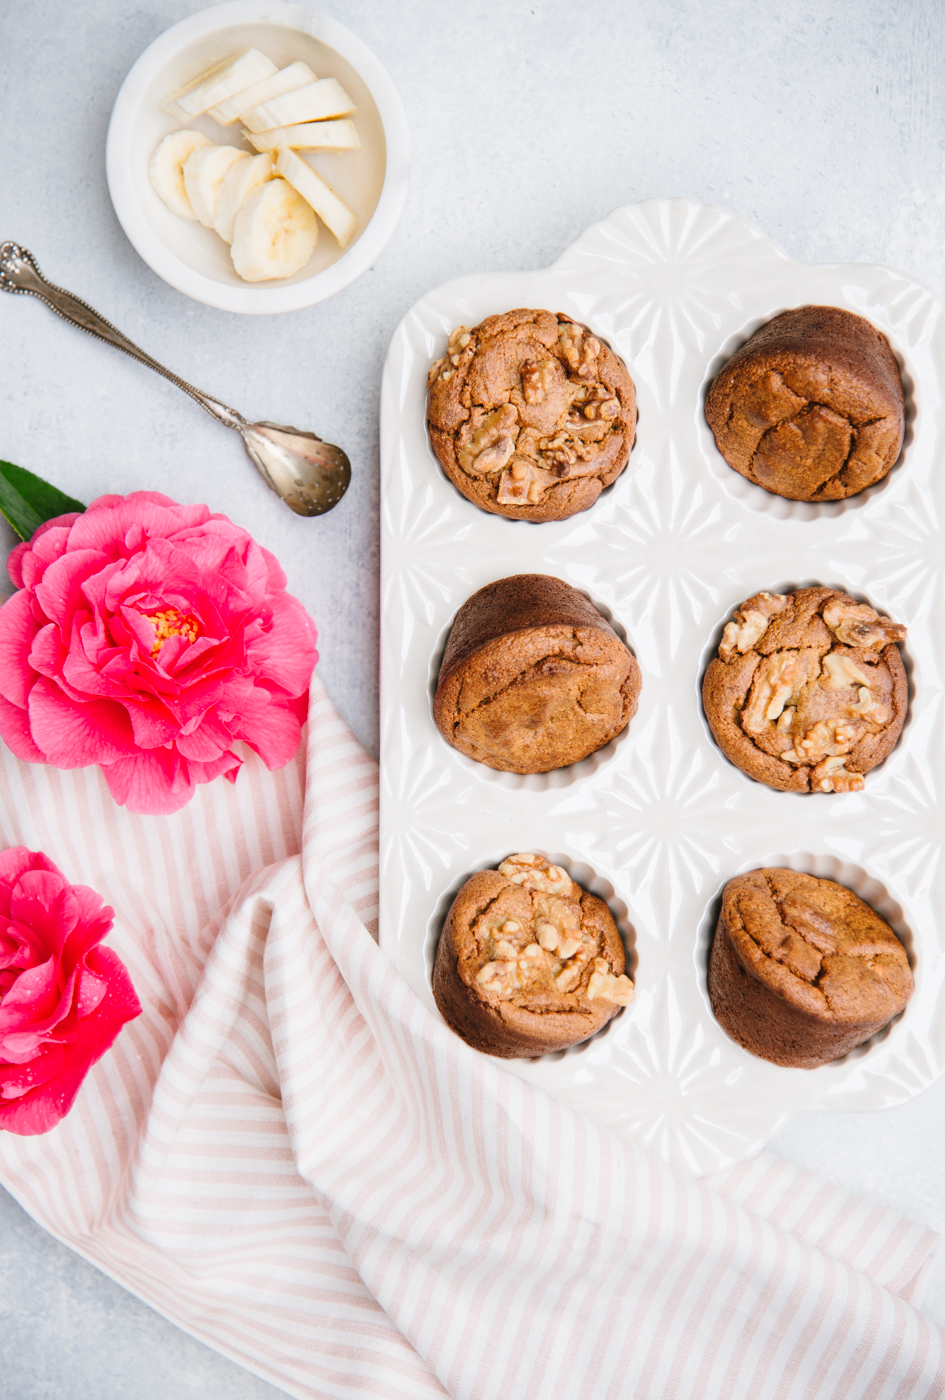 Drop a few simple, wholesome ingredients in the blender, whiz it up, and you'll have homemade muffins in a matter of minutes. Naturally sweetened, gluten-free, dairy-free, and grain-free, Blender Maple Banana Flourless Muffins are sure to be a hit!